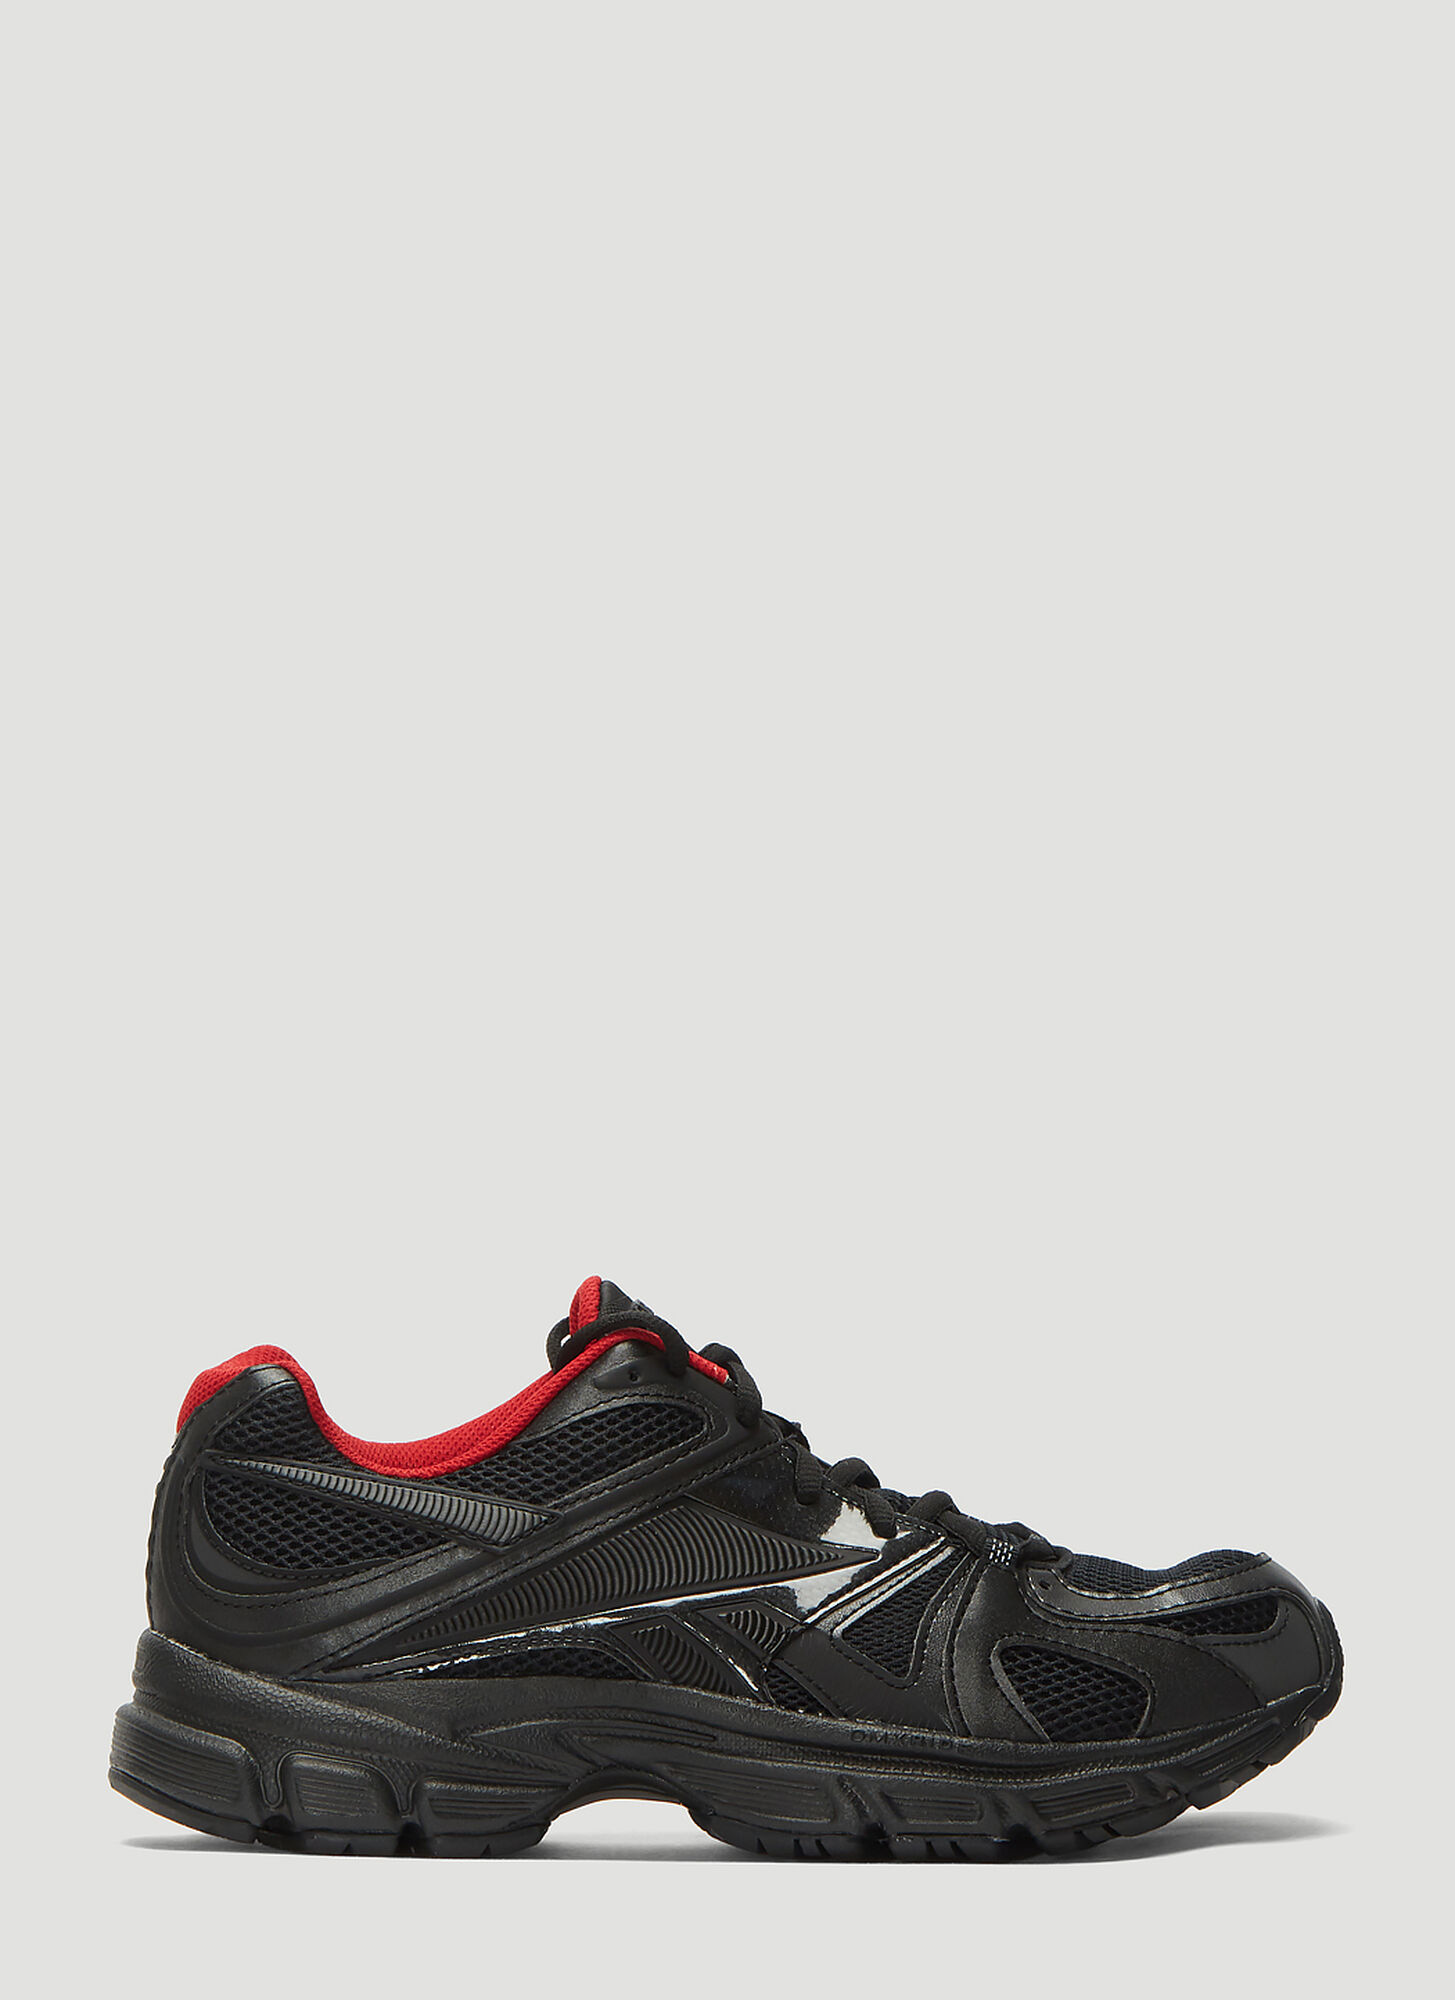 Vetements X Reebok Spike Runner 200 Low-Top Sneakers in Black